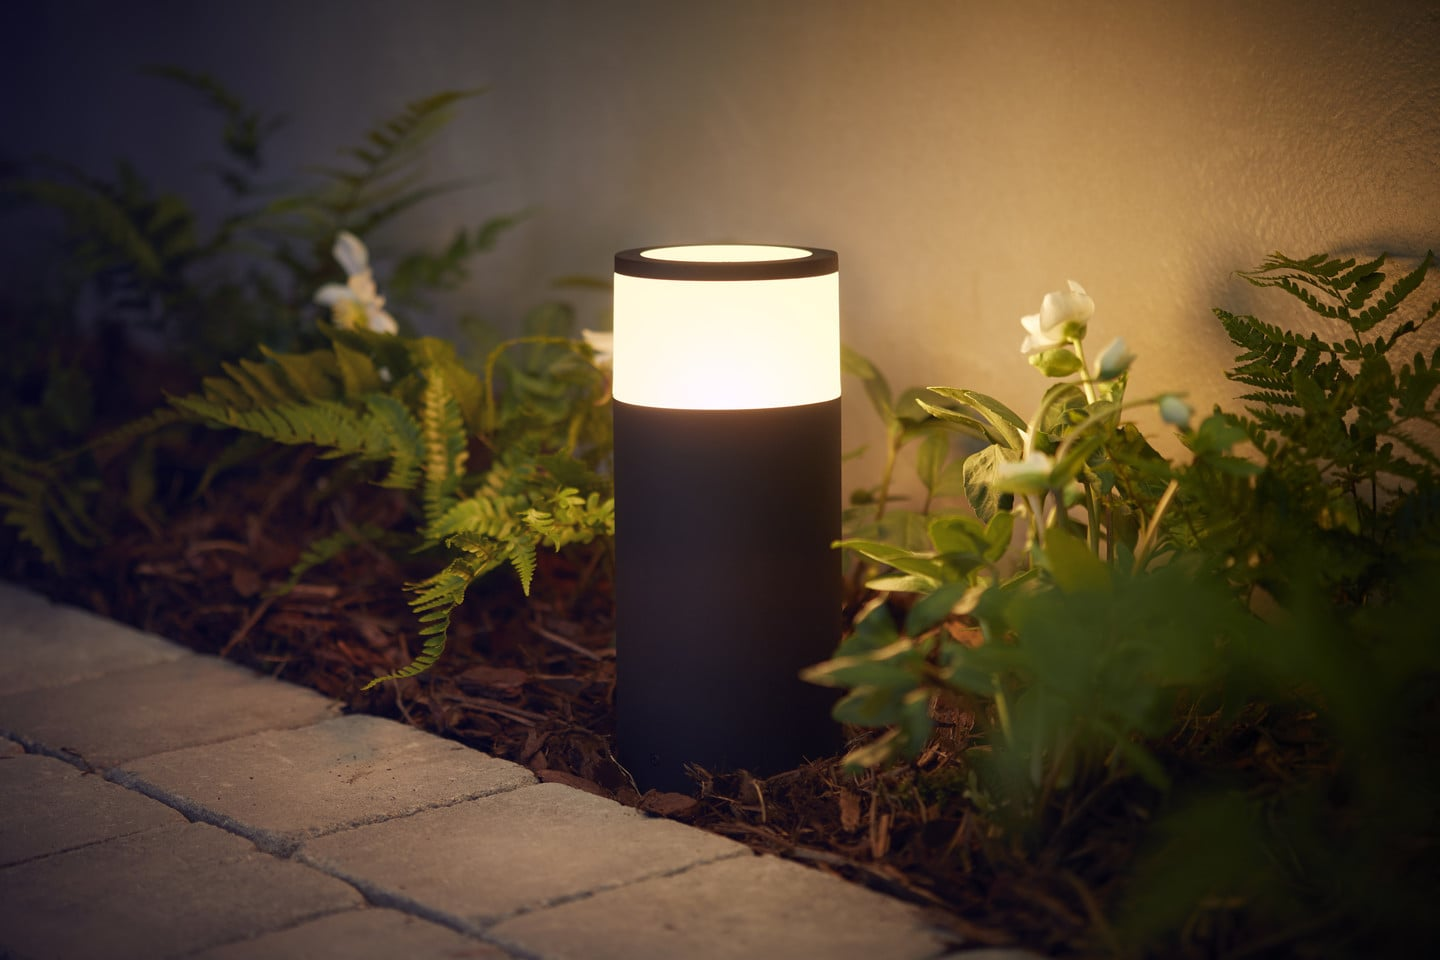 Philips Hue outdoor range adds mood lighting to your garden